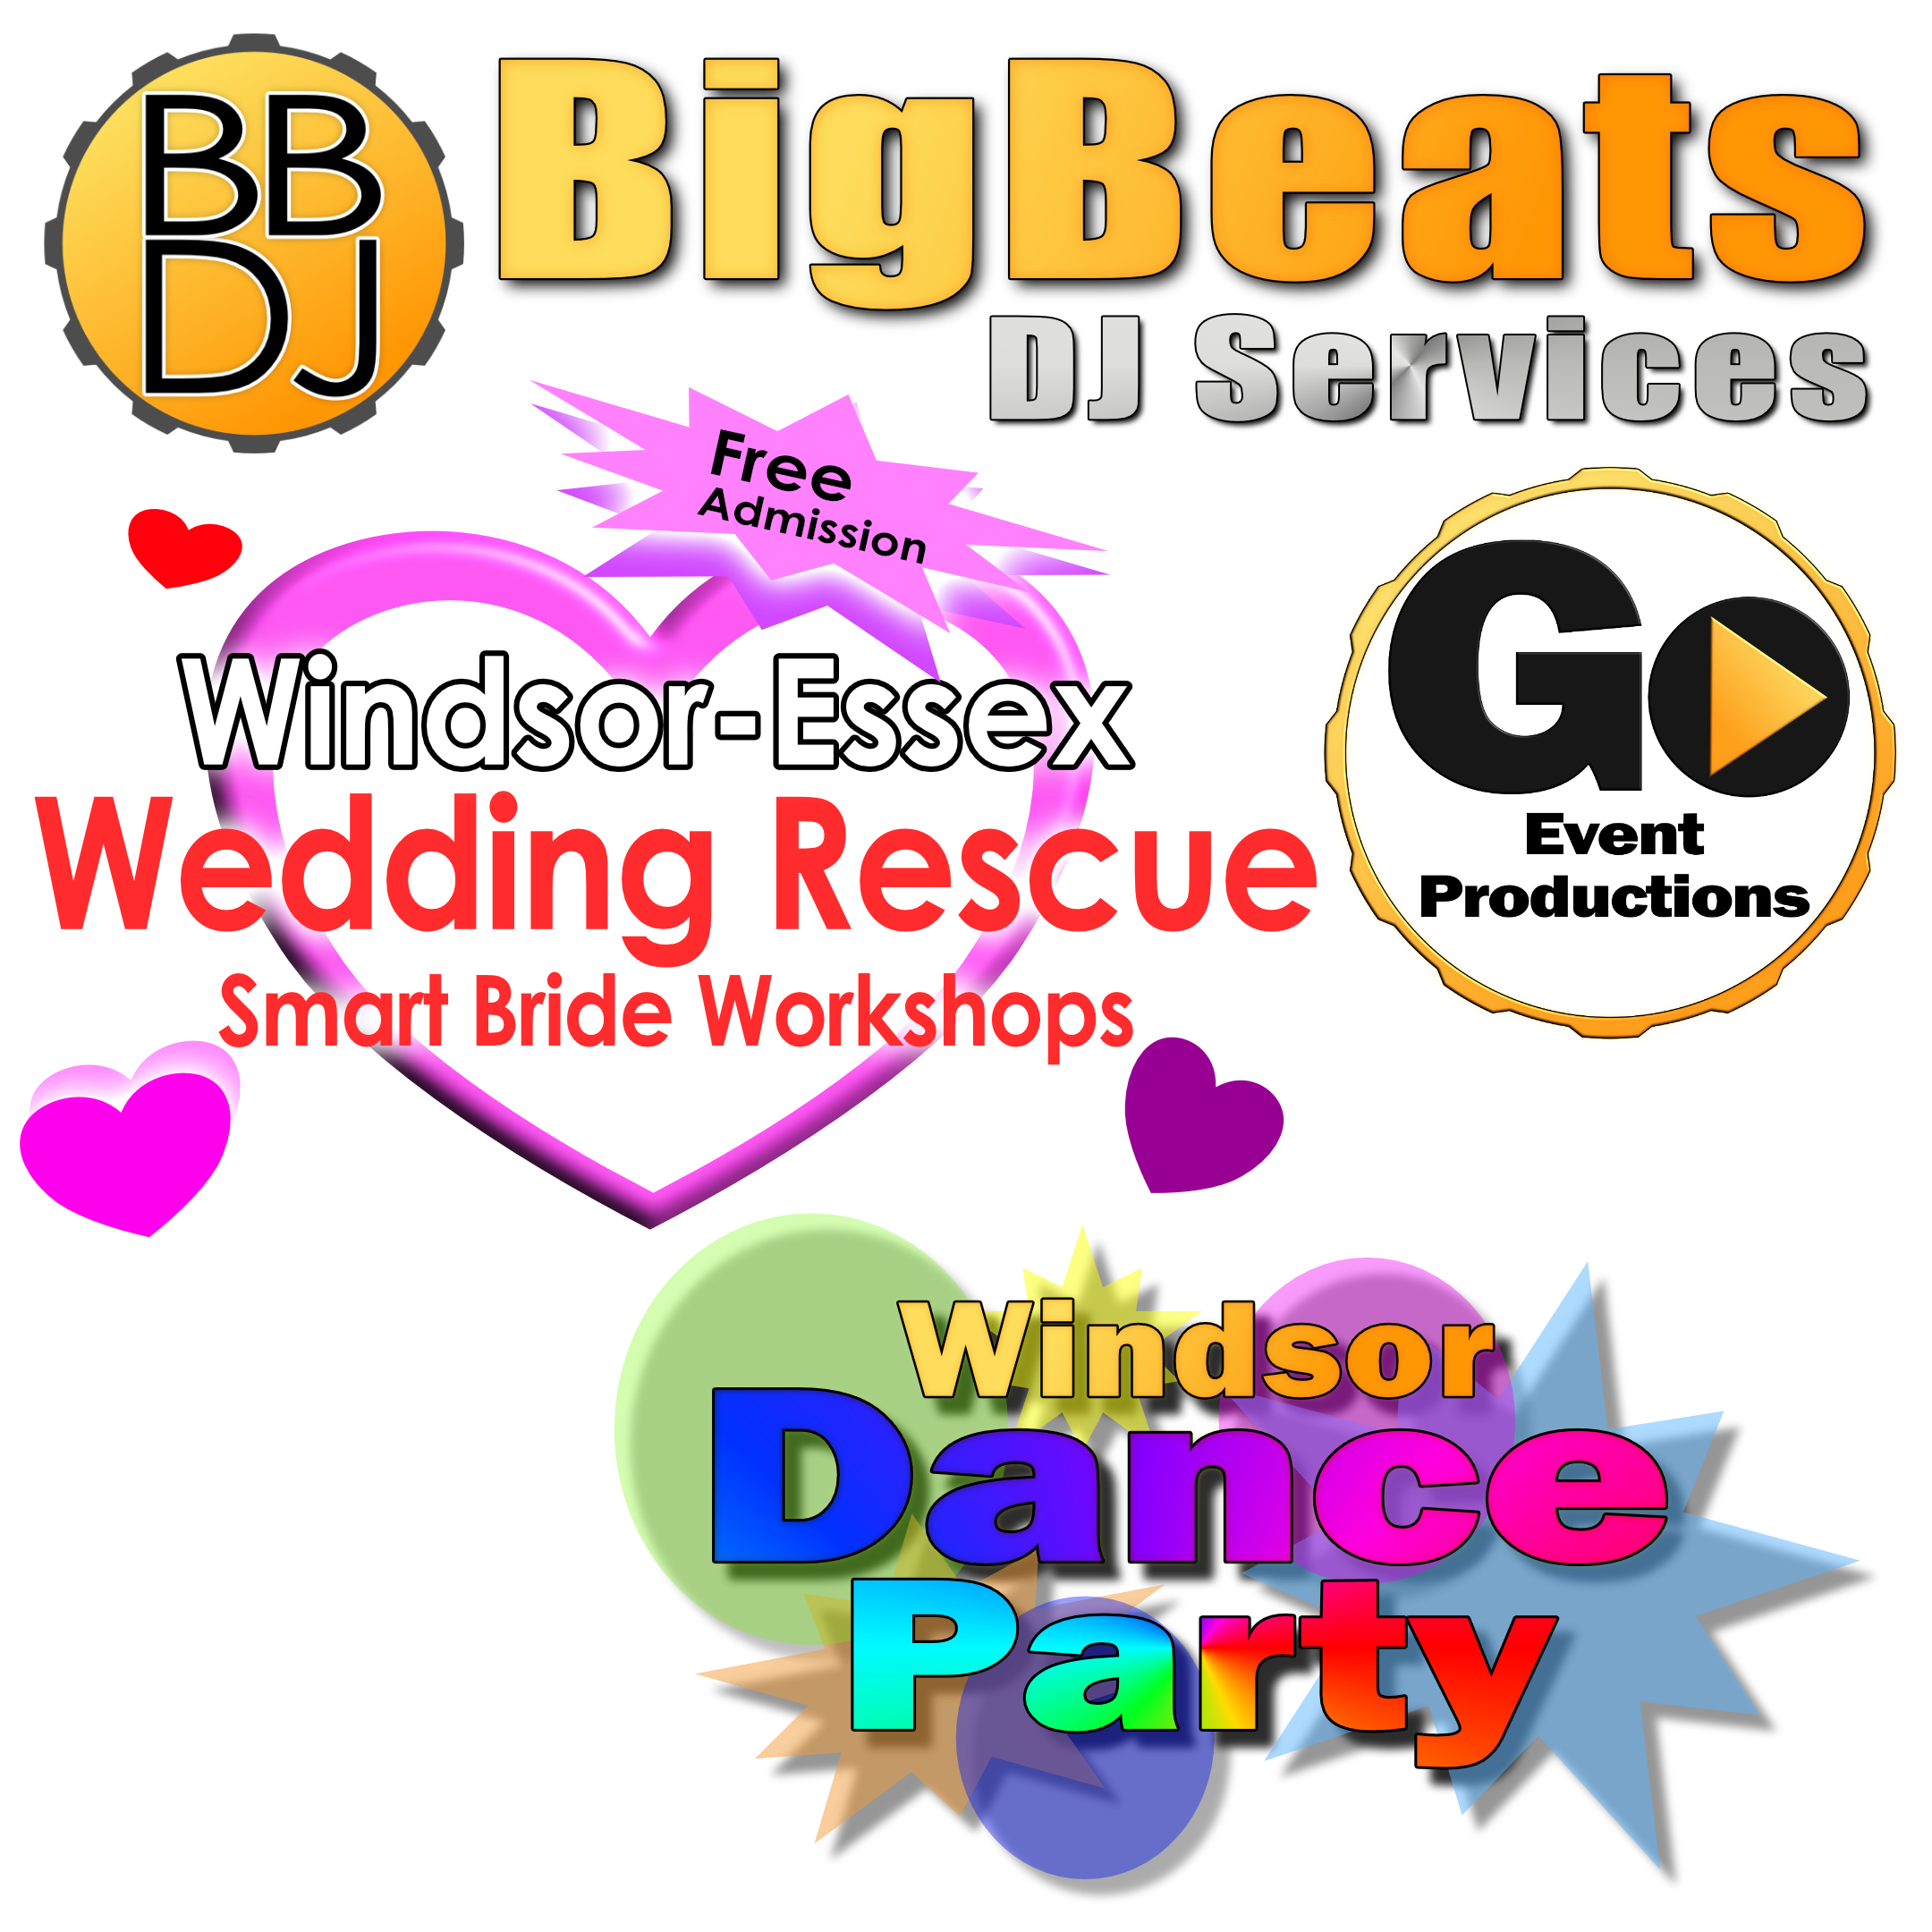 Big Beats Events card for website.jpg